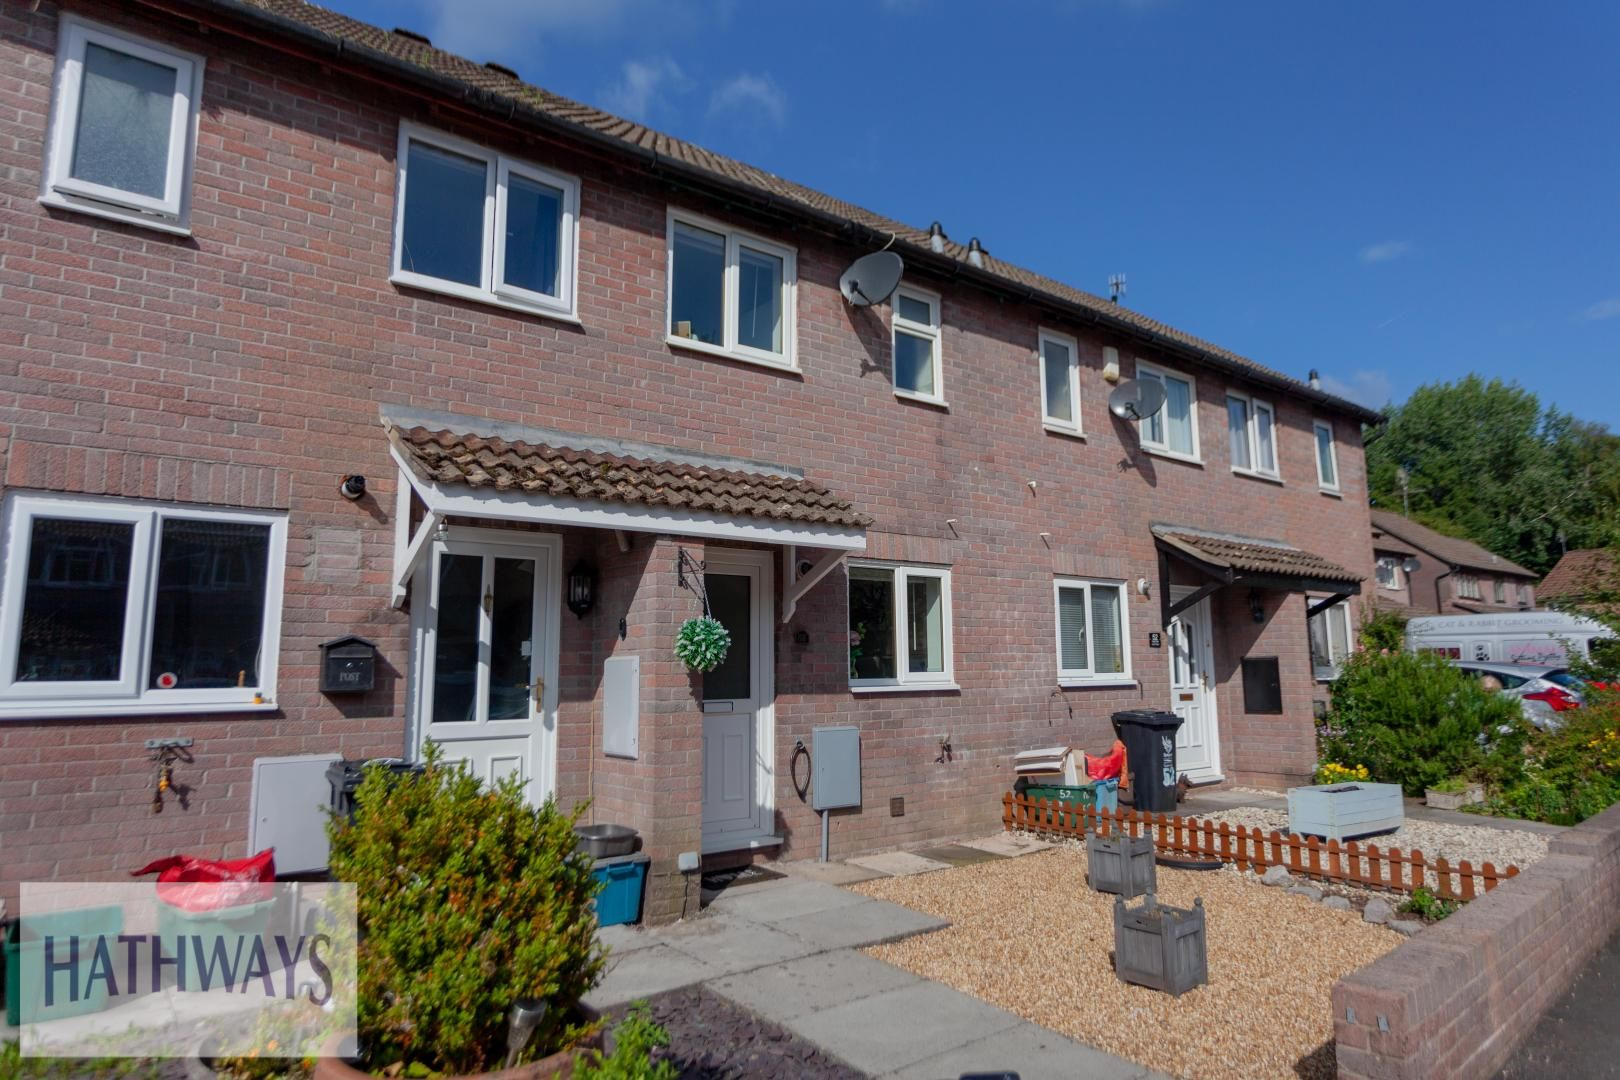 2 bed house for sale in Forge Close, NP18